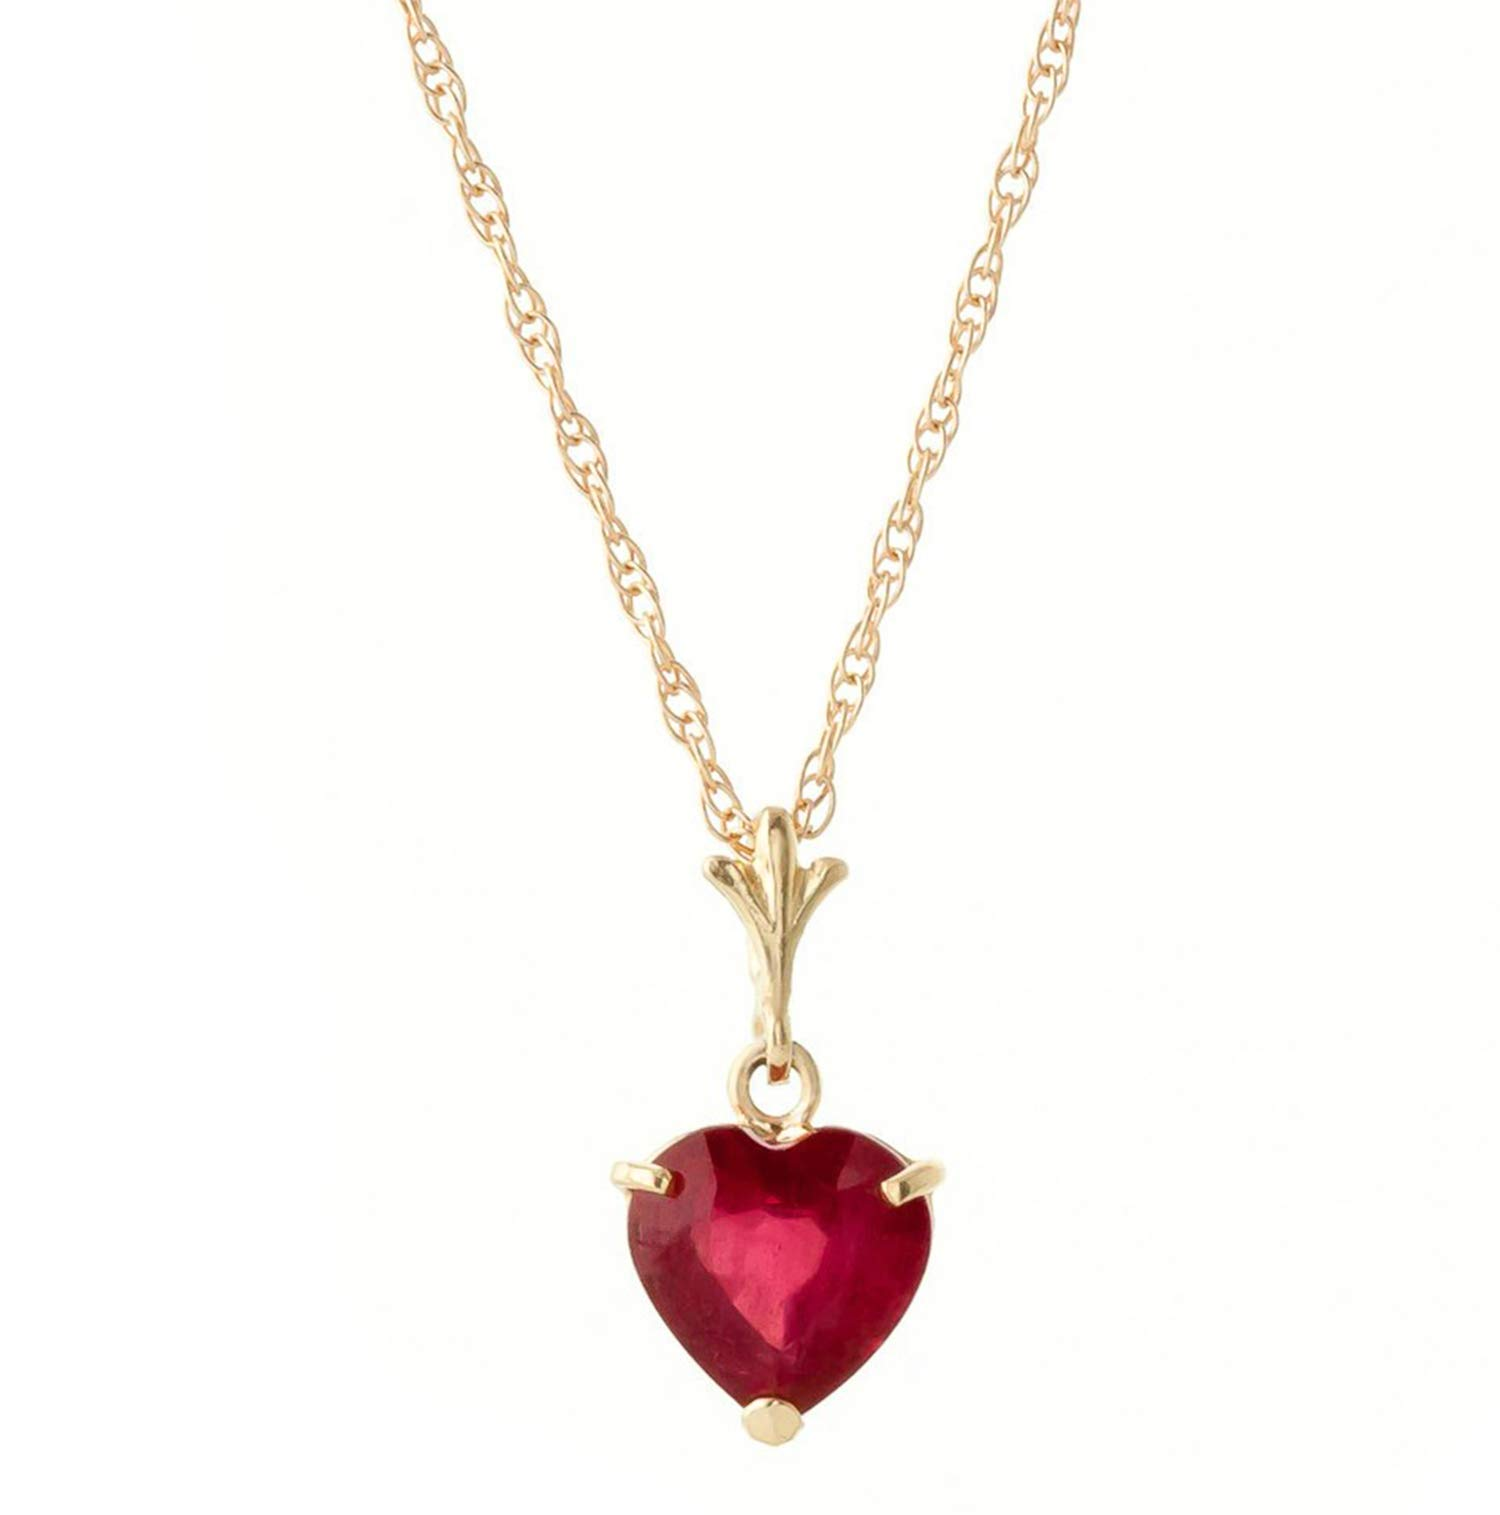 Galaxy Gold 1.45 Carat High Polished 14k 16'' Solid Yellow Gold Pendant Necklace with Heart Shape Natural Ruby - Heat Treated